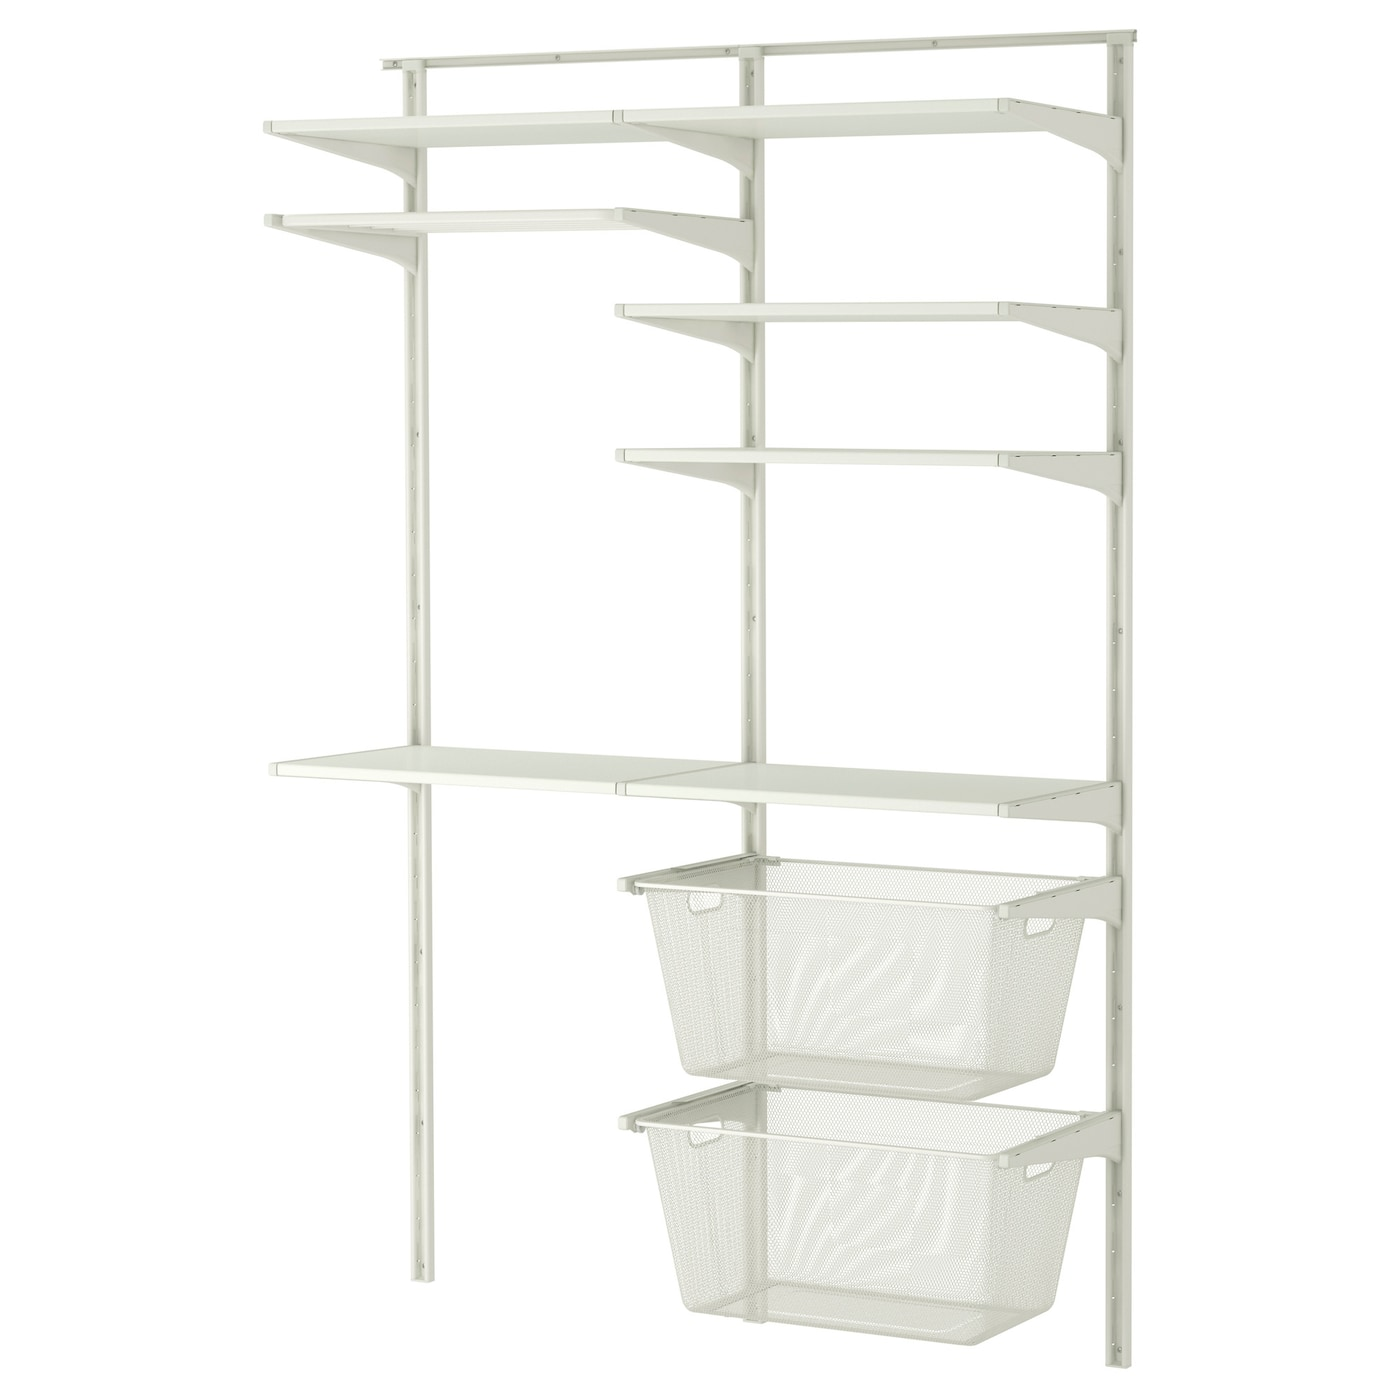 system mouse products rack shelf suspended animals mice